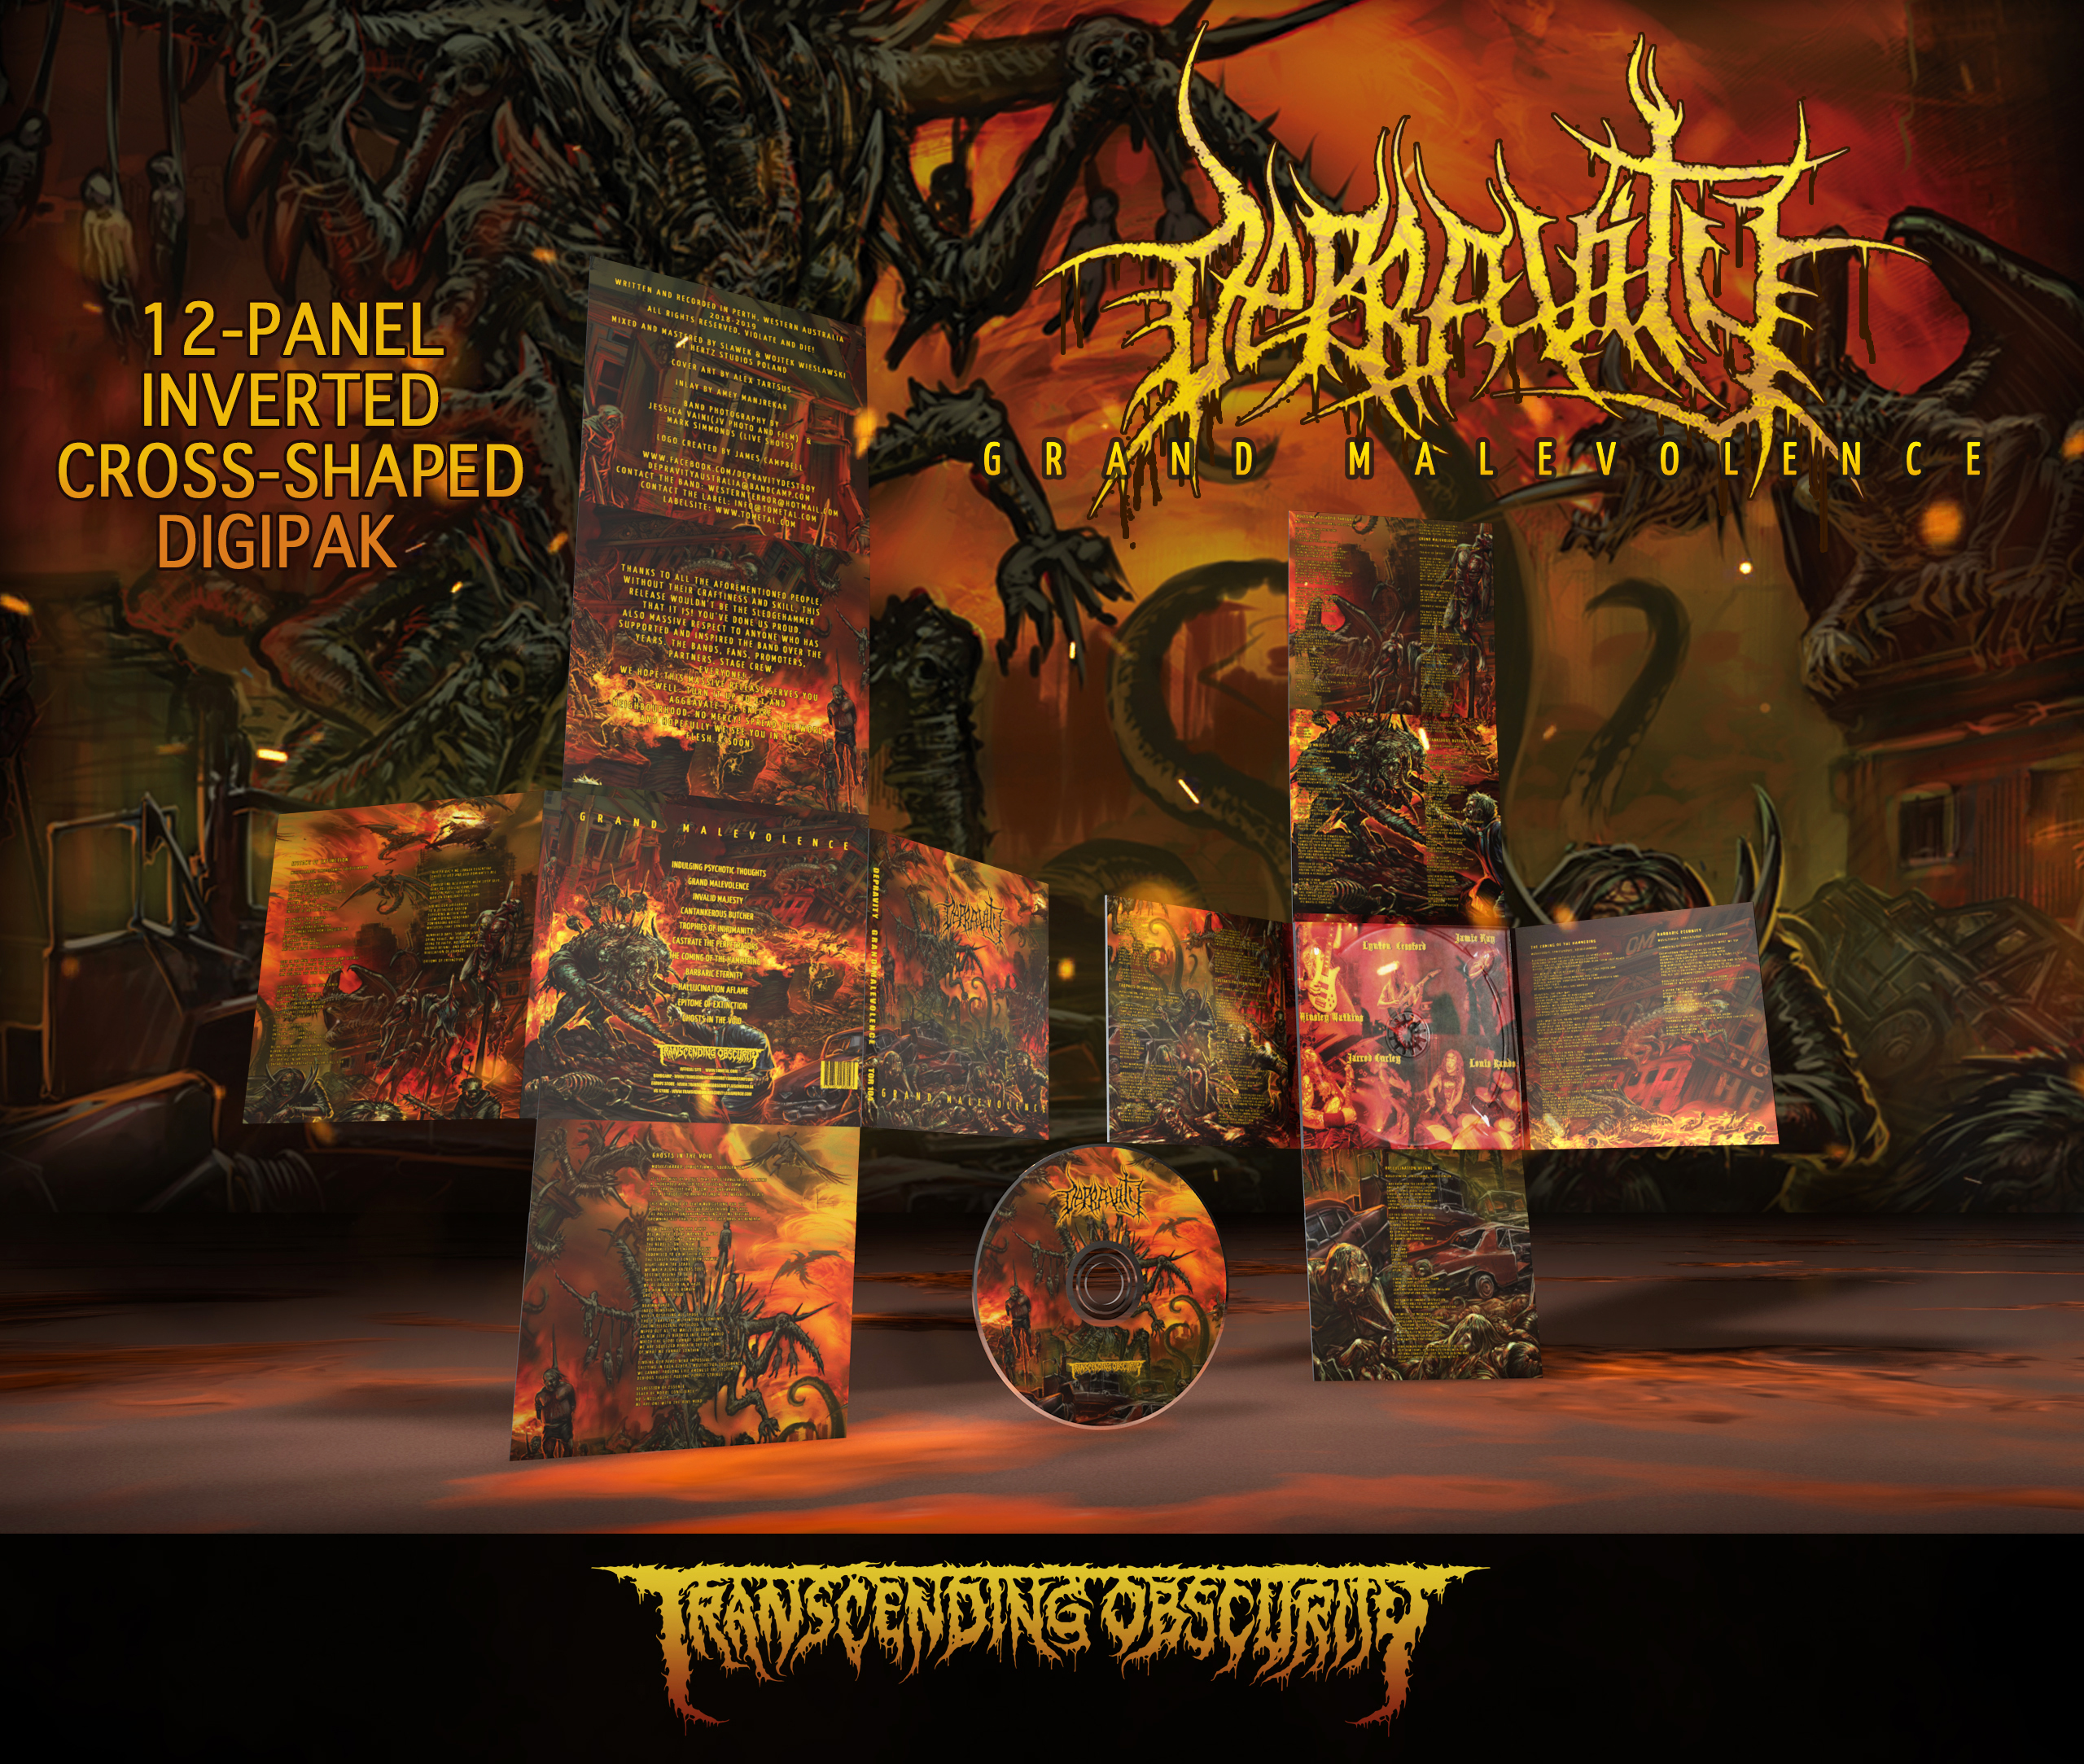 DEPRAVITY (Aus) - Grand Malevolence 12-Panel Inverted Cross-Shaped Digipak CD